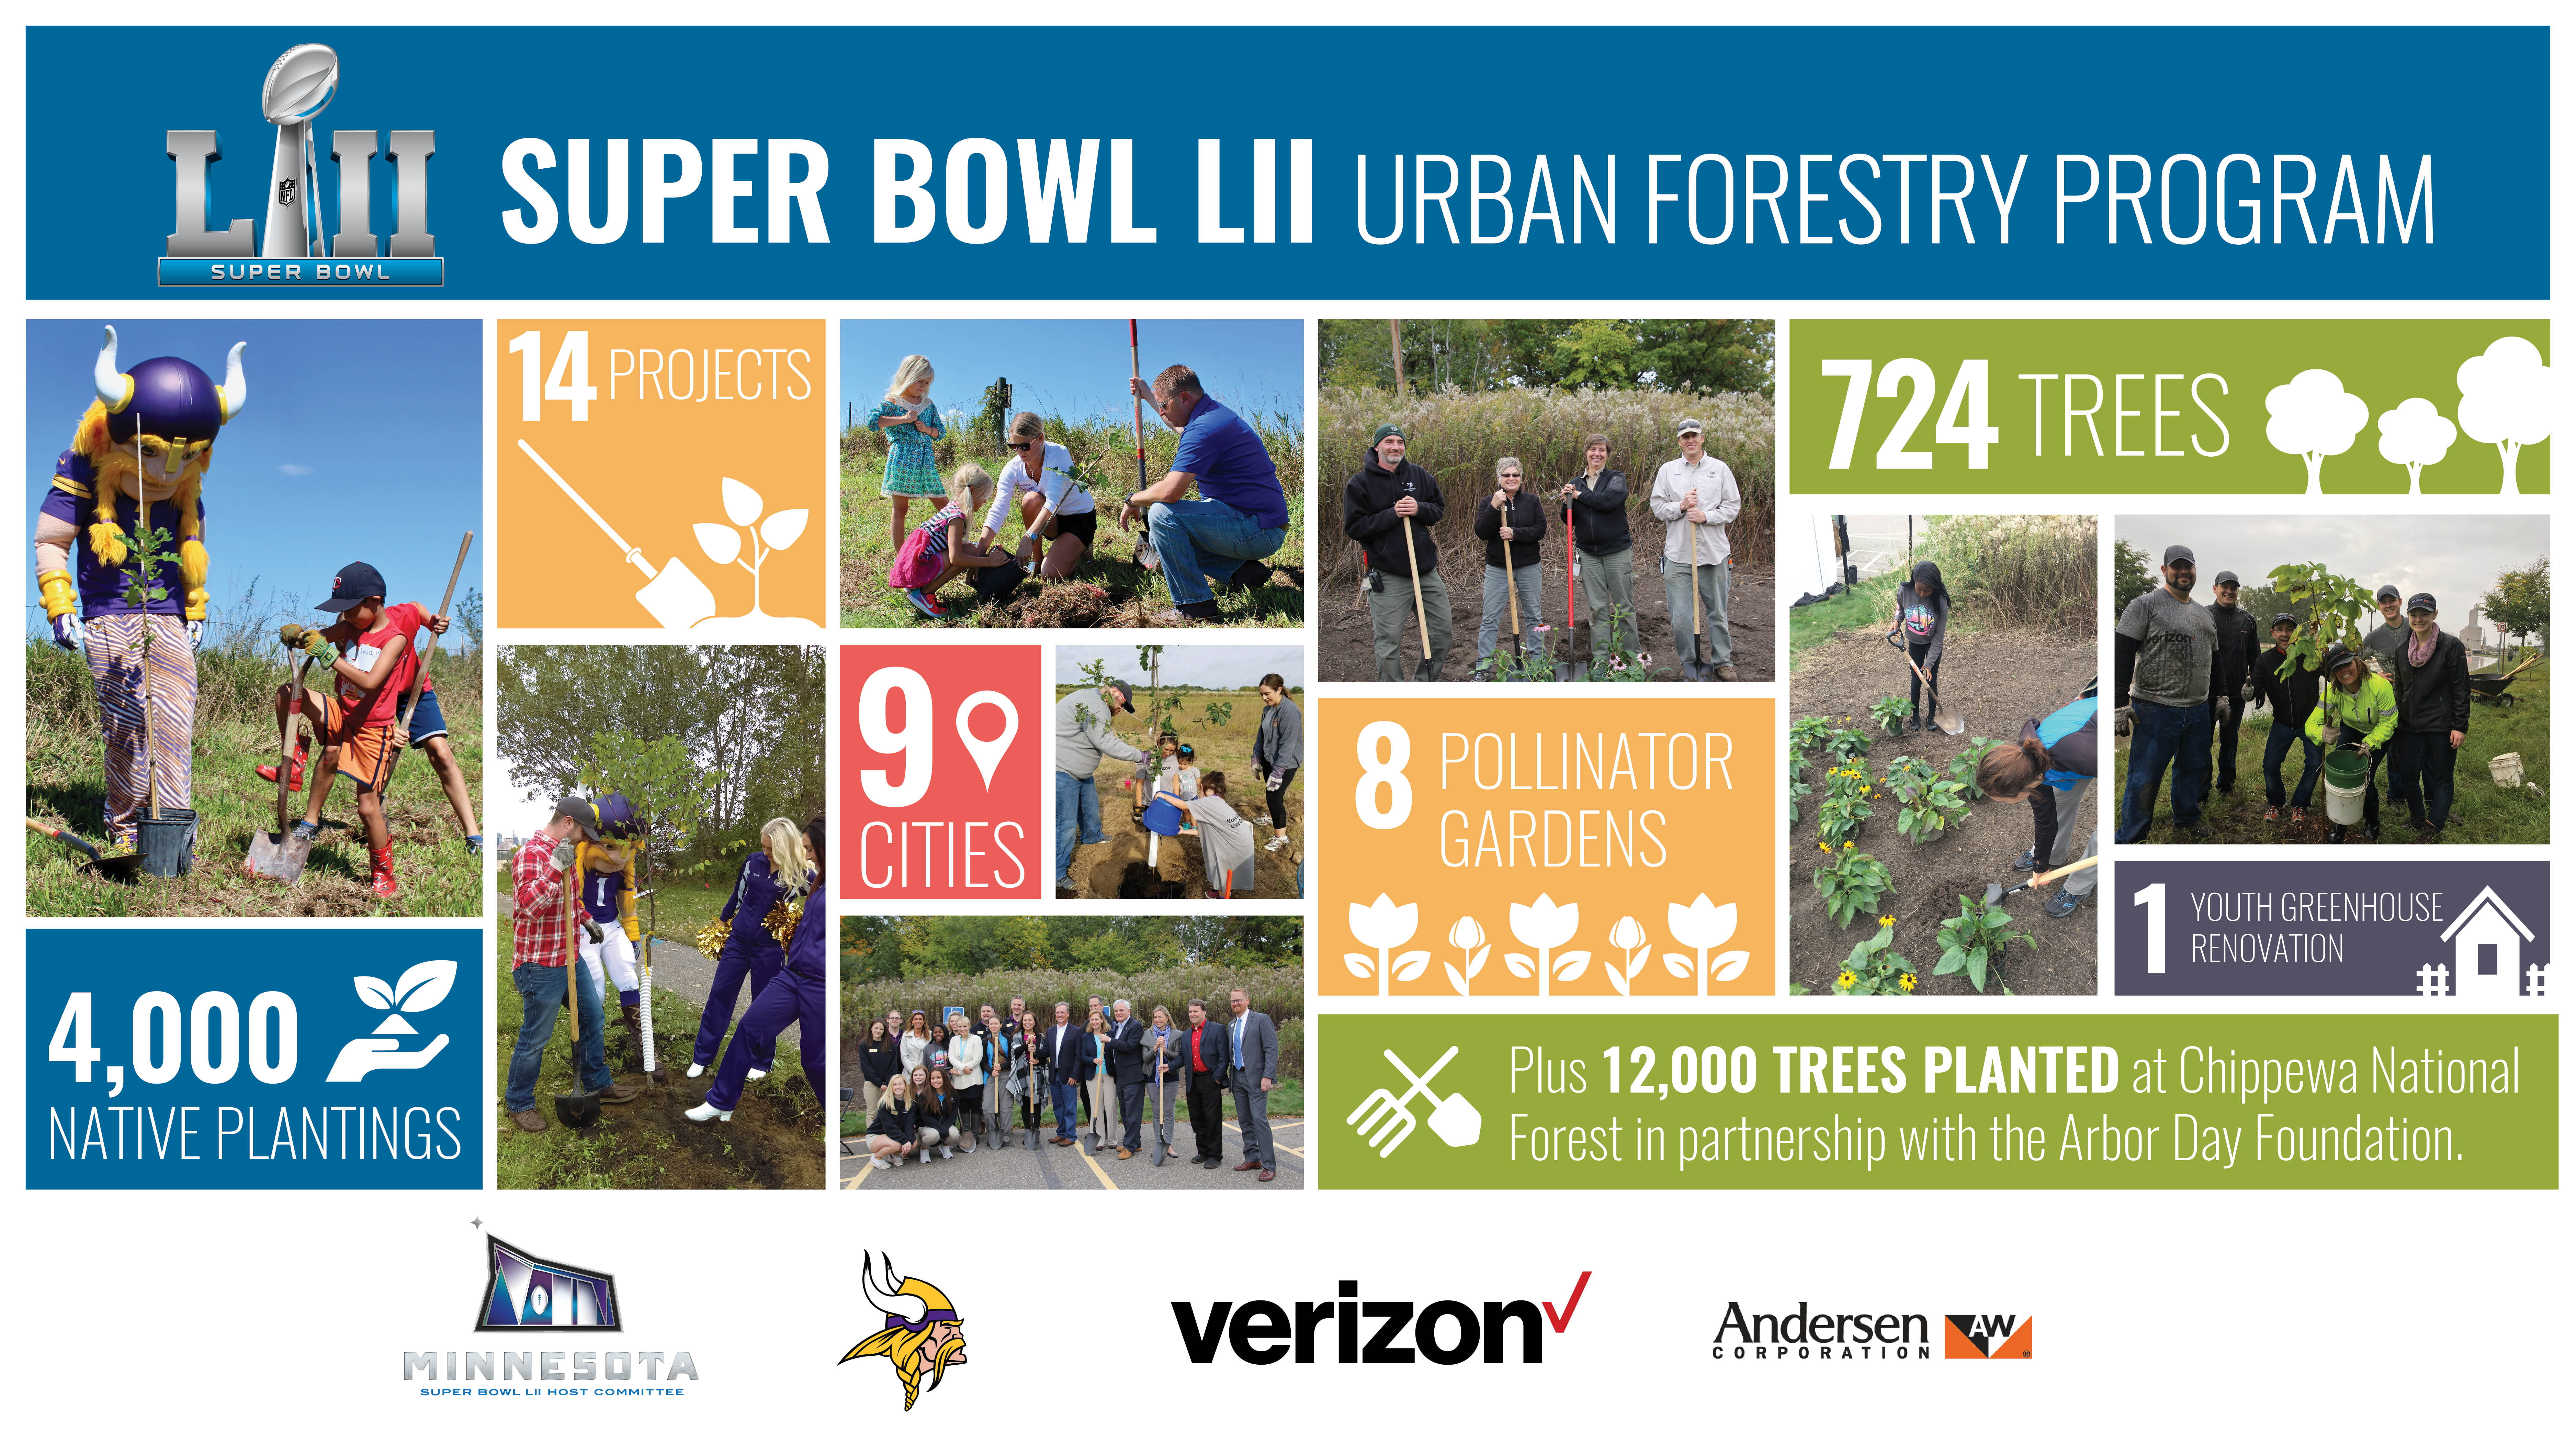 """Andersen has proudly participated in more than a dozen restoration events, which have taken place across Minnesota since May in an effort to leave a """"green legacy"""" lasting long after the Super Bowl is played next Feb. 4 in downtown Minneapolis."""